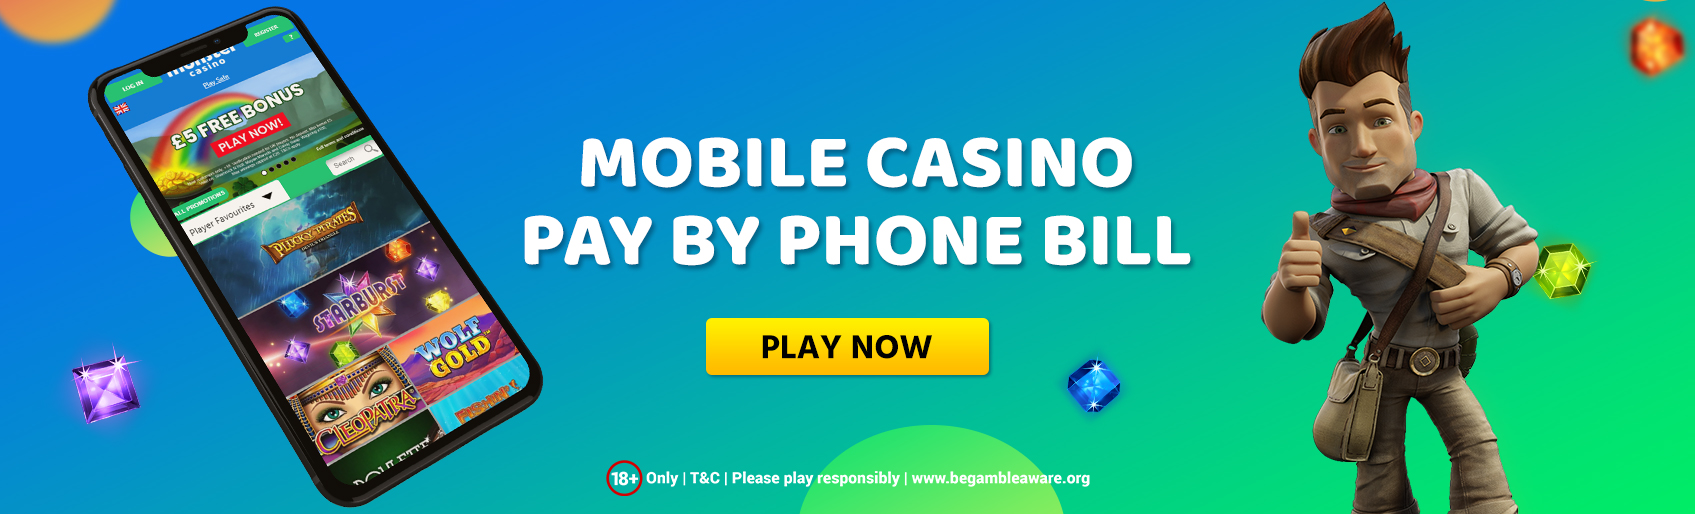 bill by casino pay phone